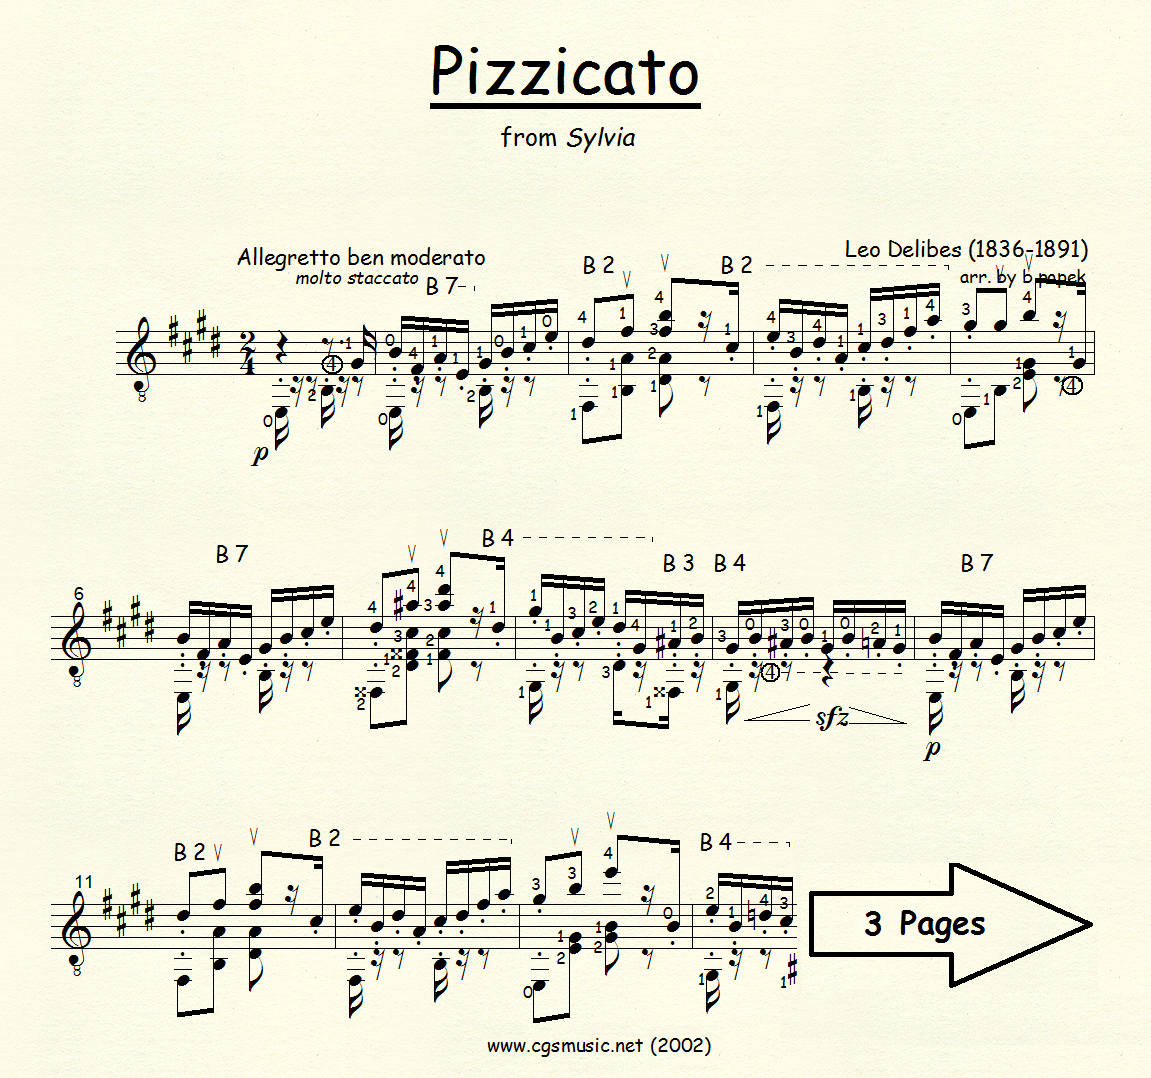 Pizzicato (Delibes) for Classical Guitar in Standard Notation